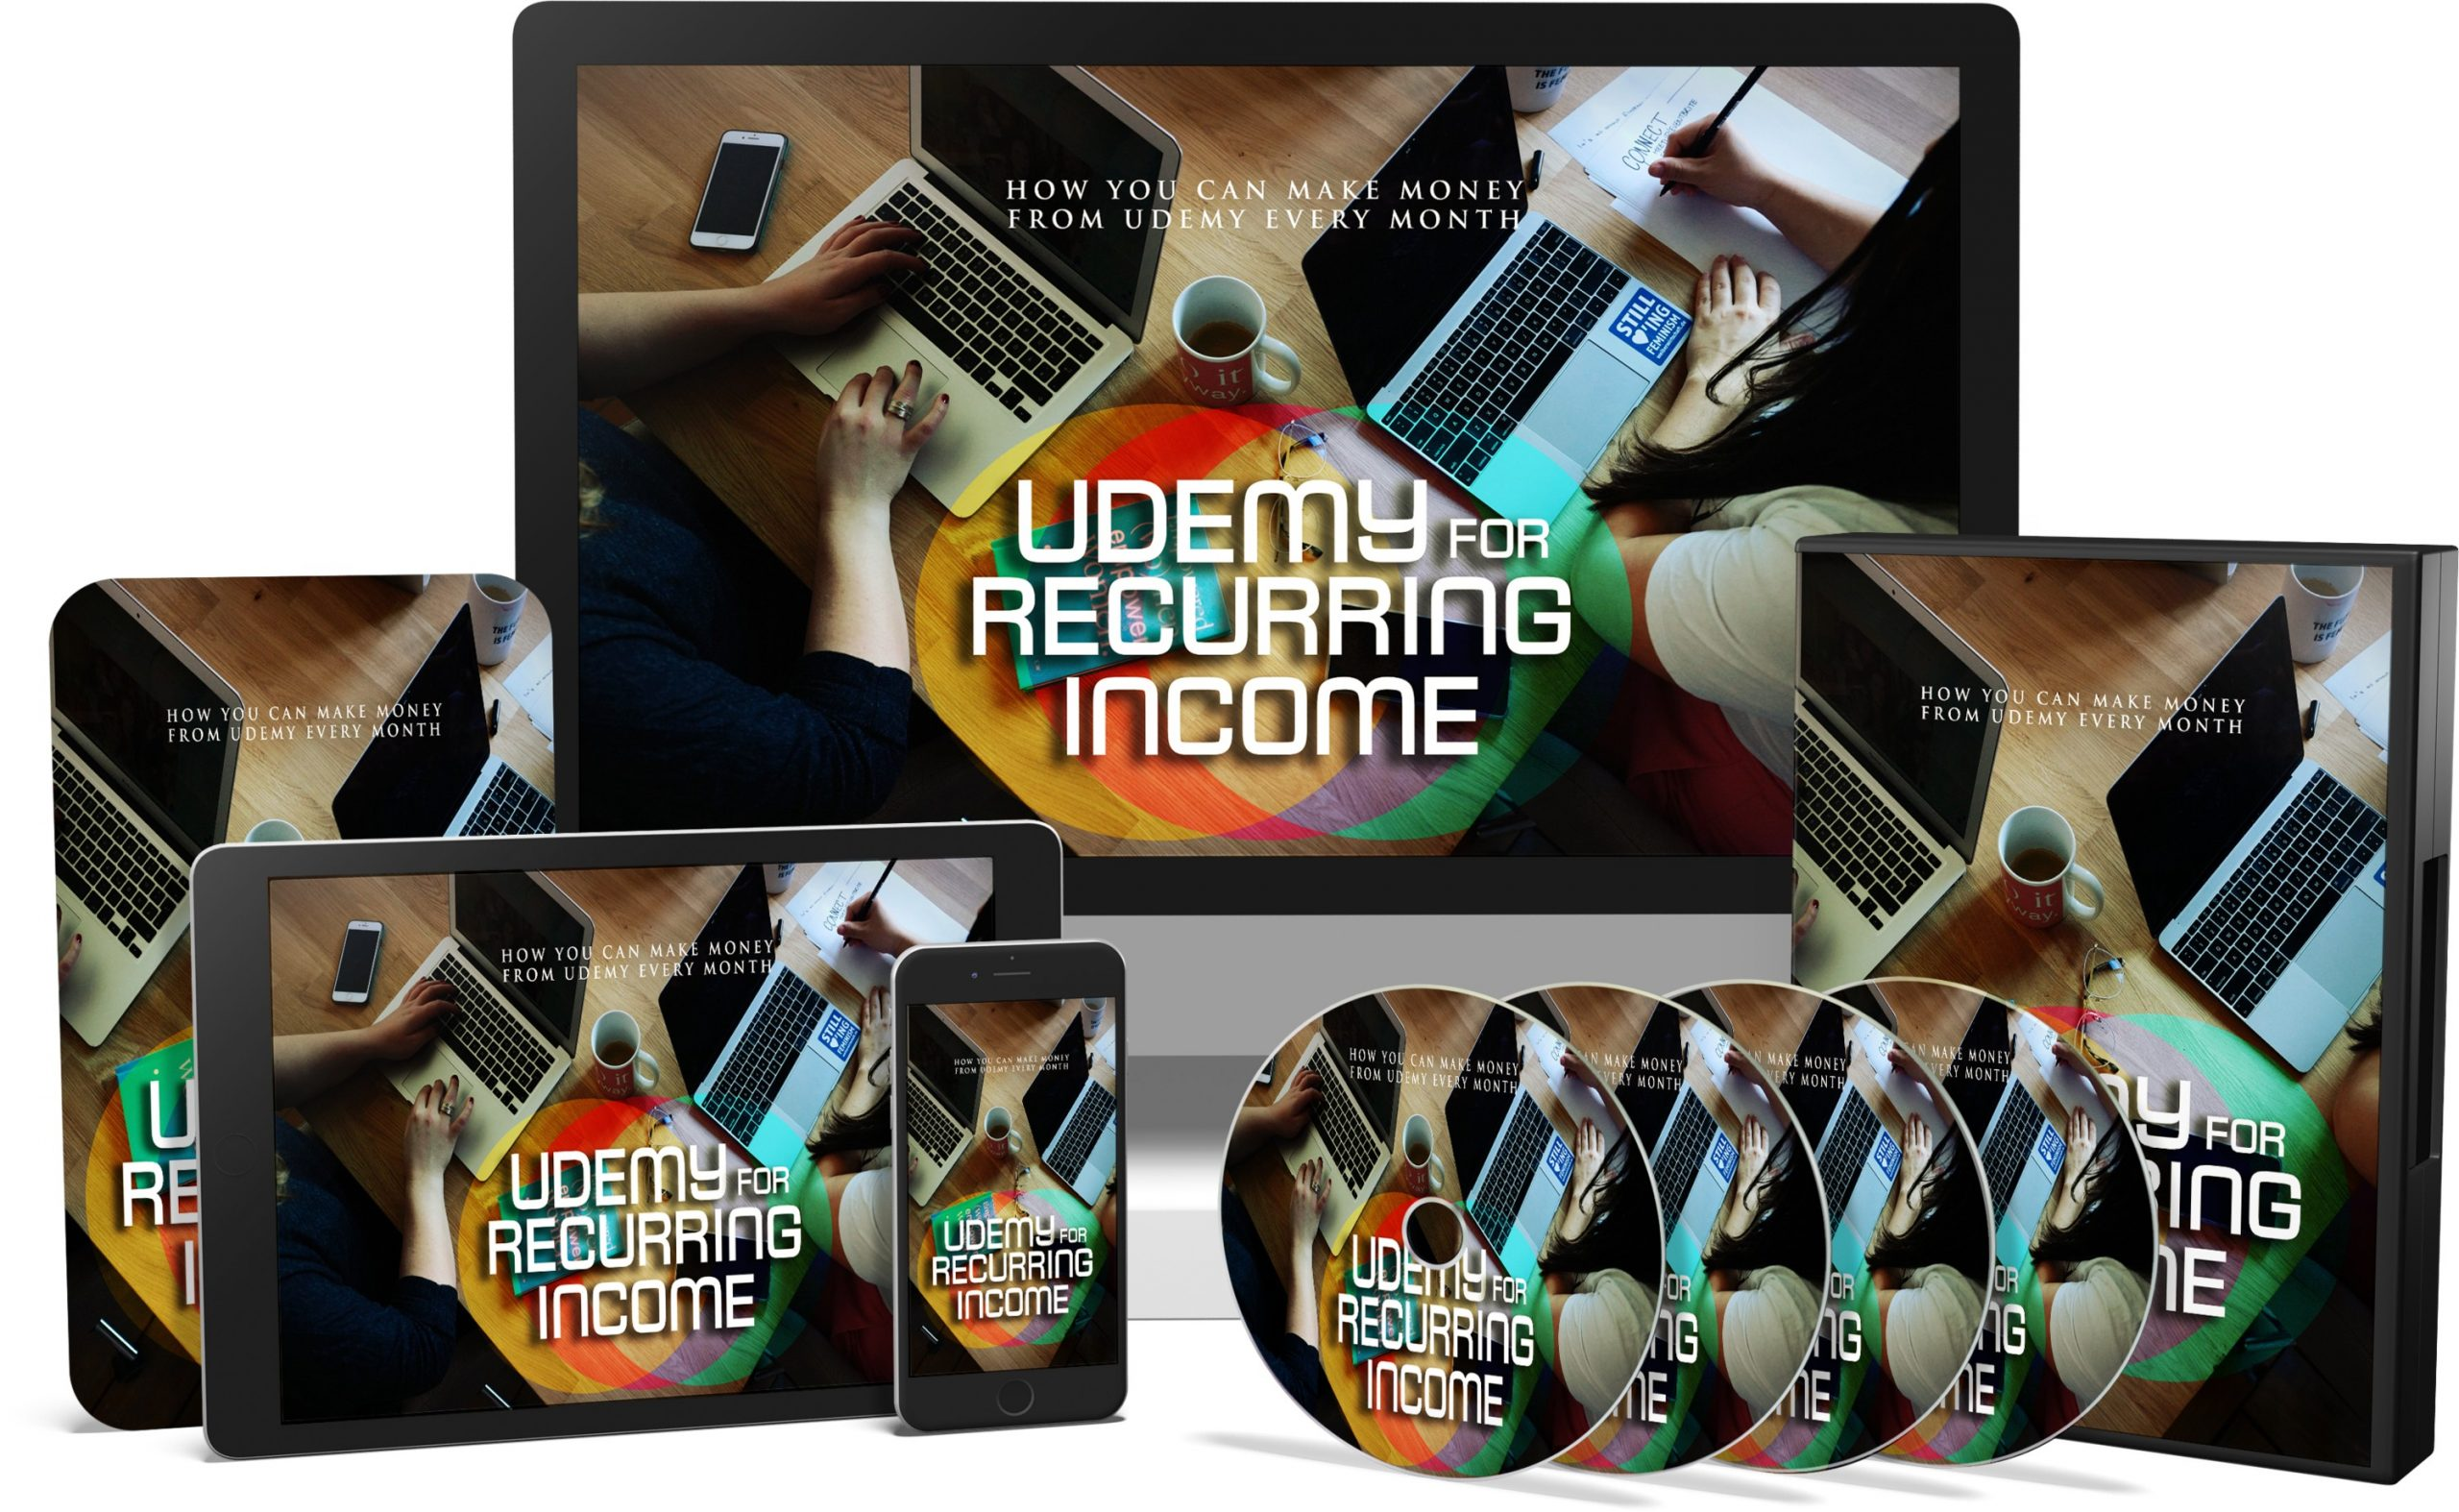 Udemy For Recurring Income PLR